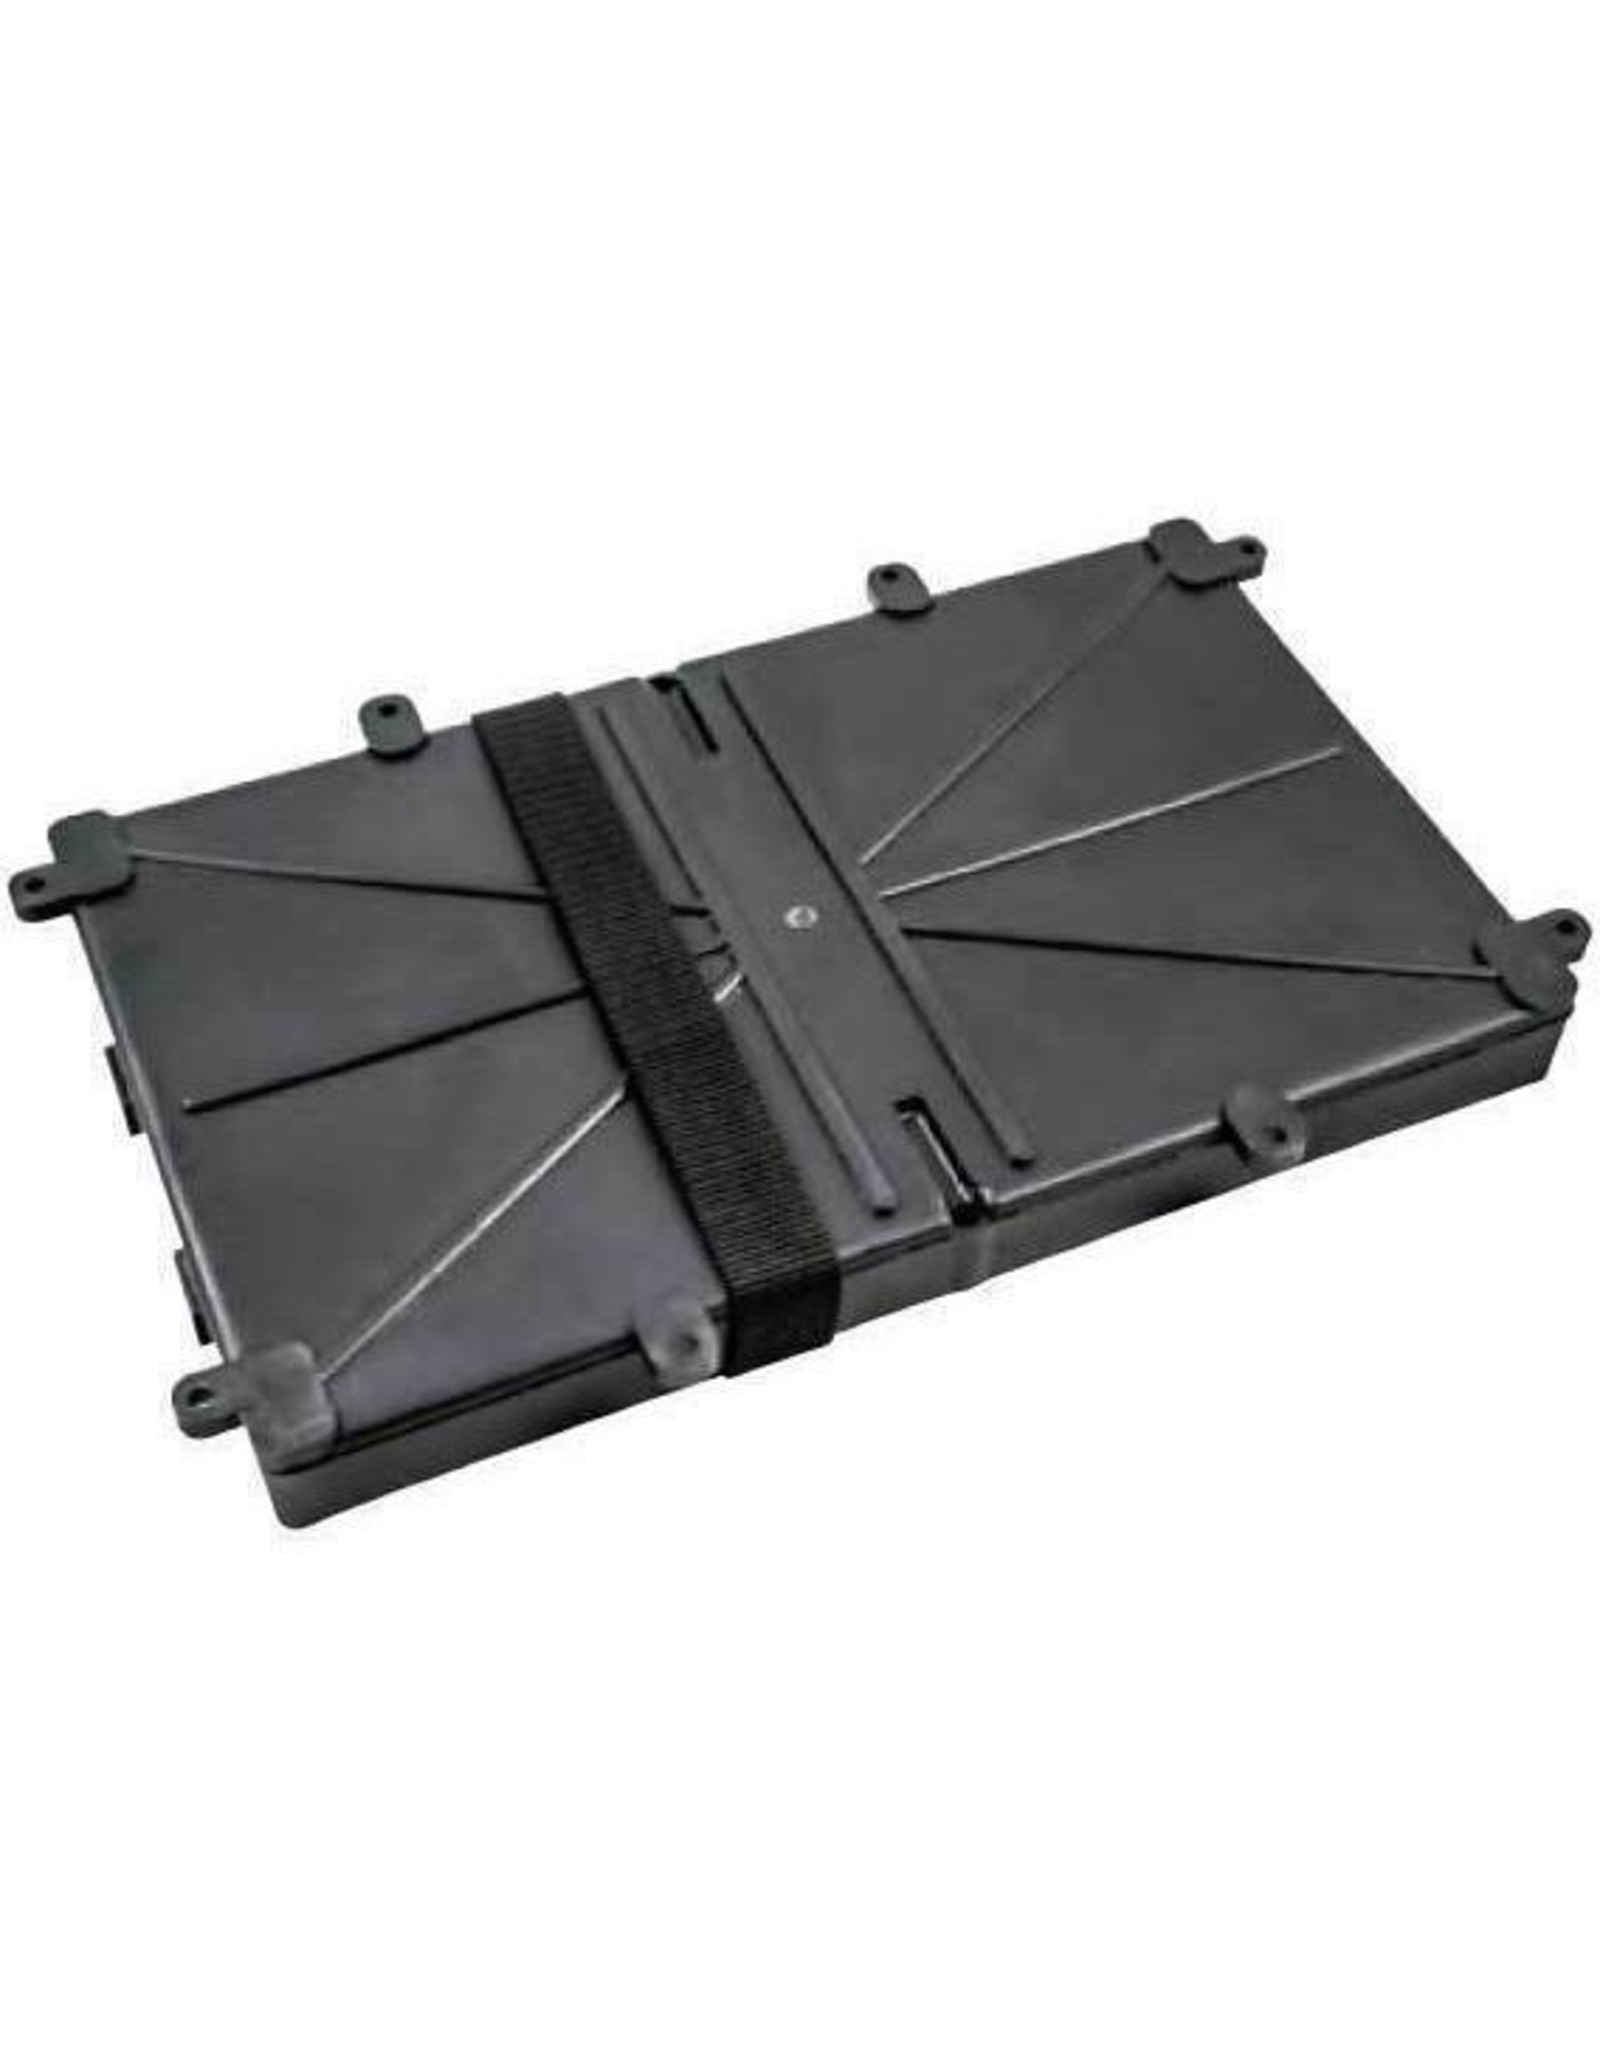 TH Marine Battery Tray 24/24M Series With Stainless Buckle